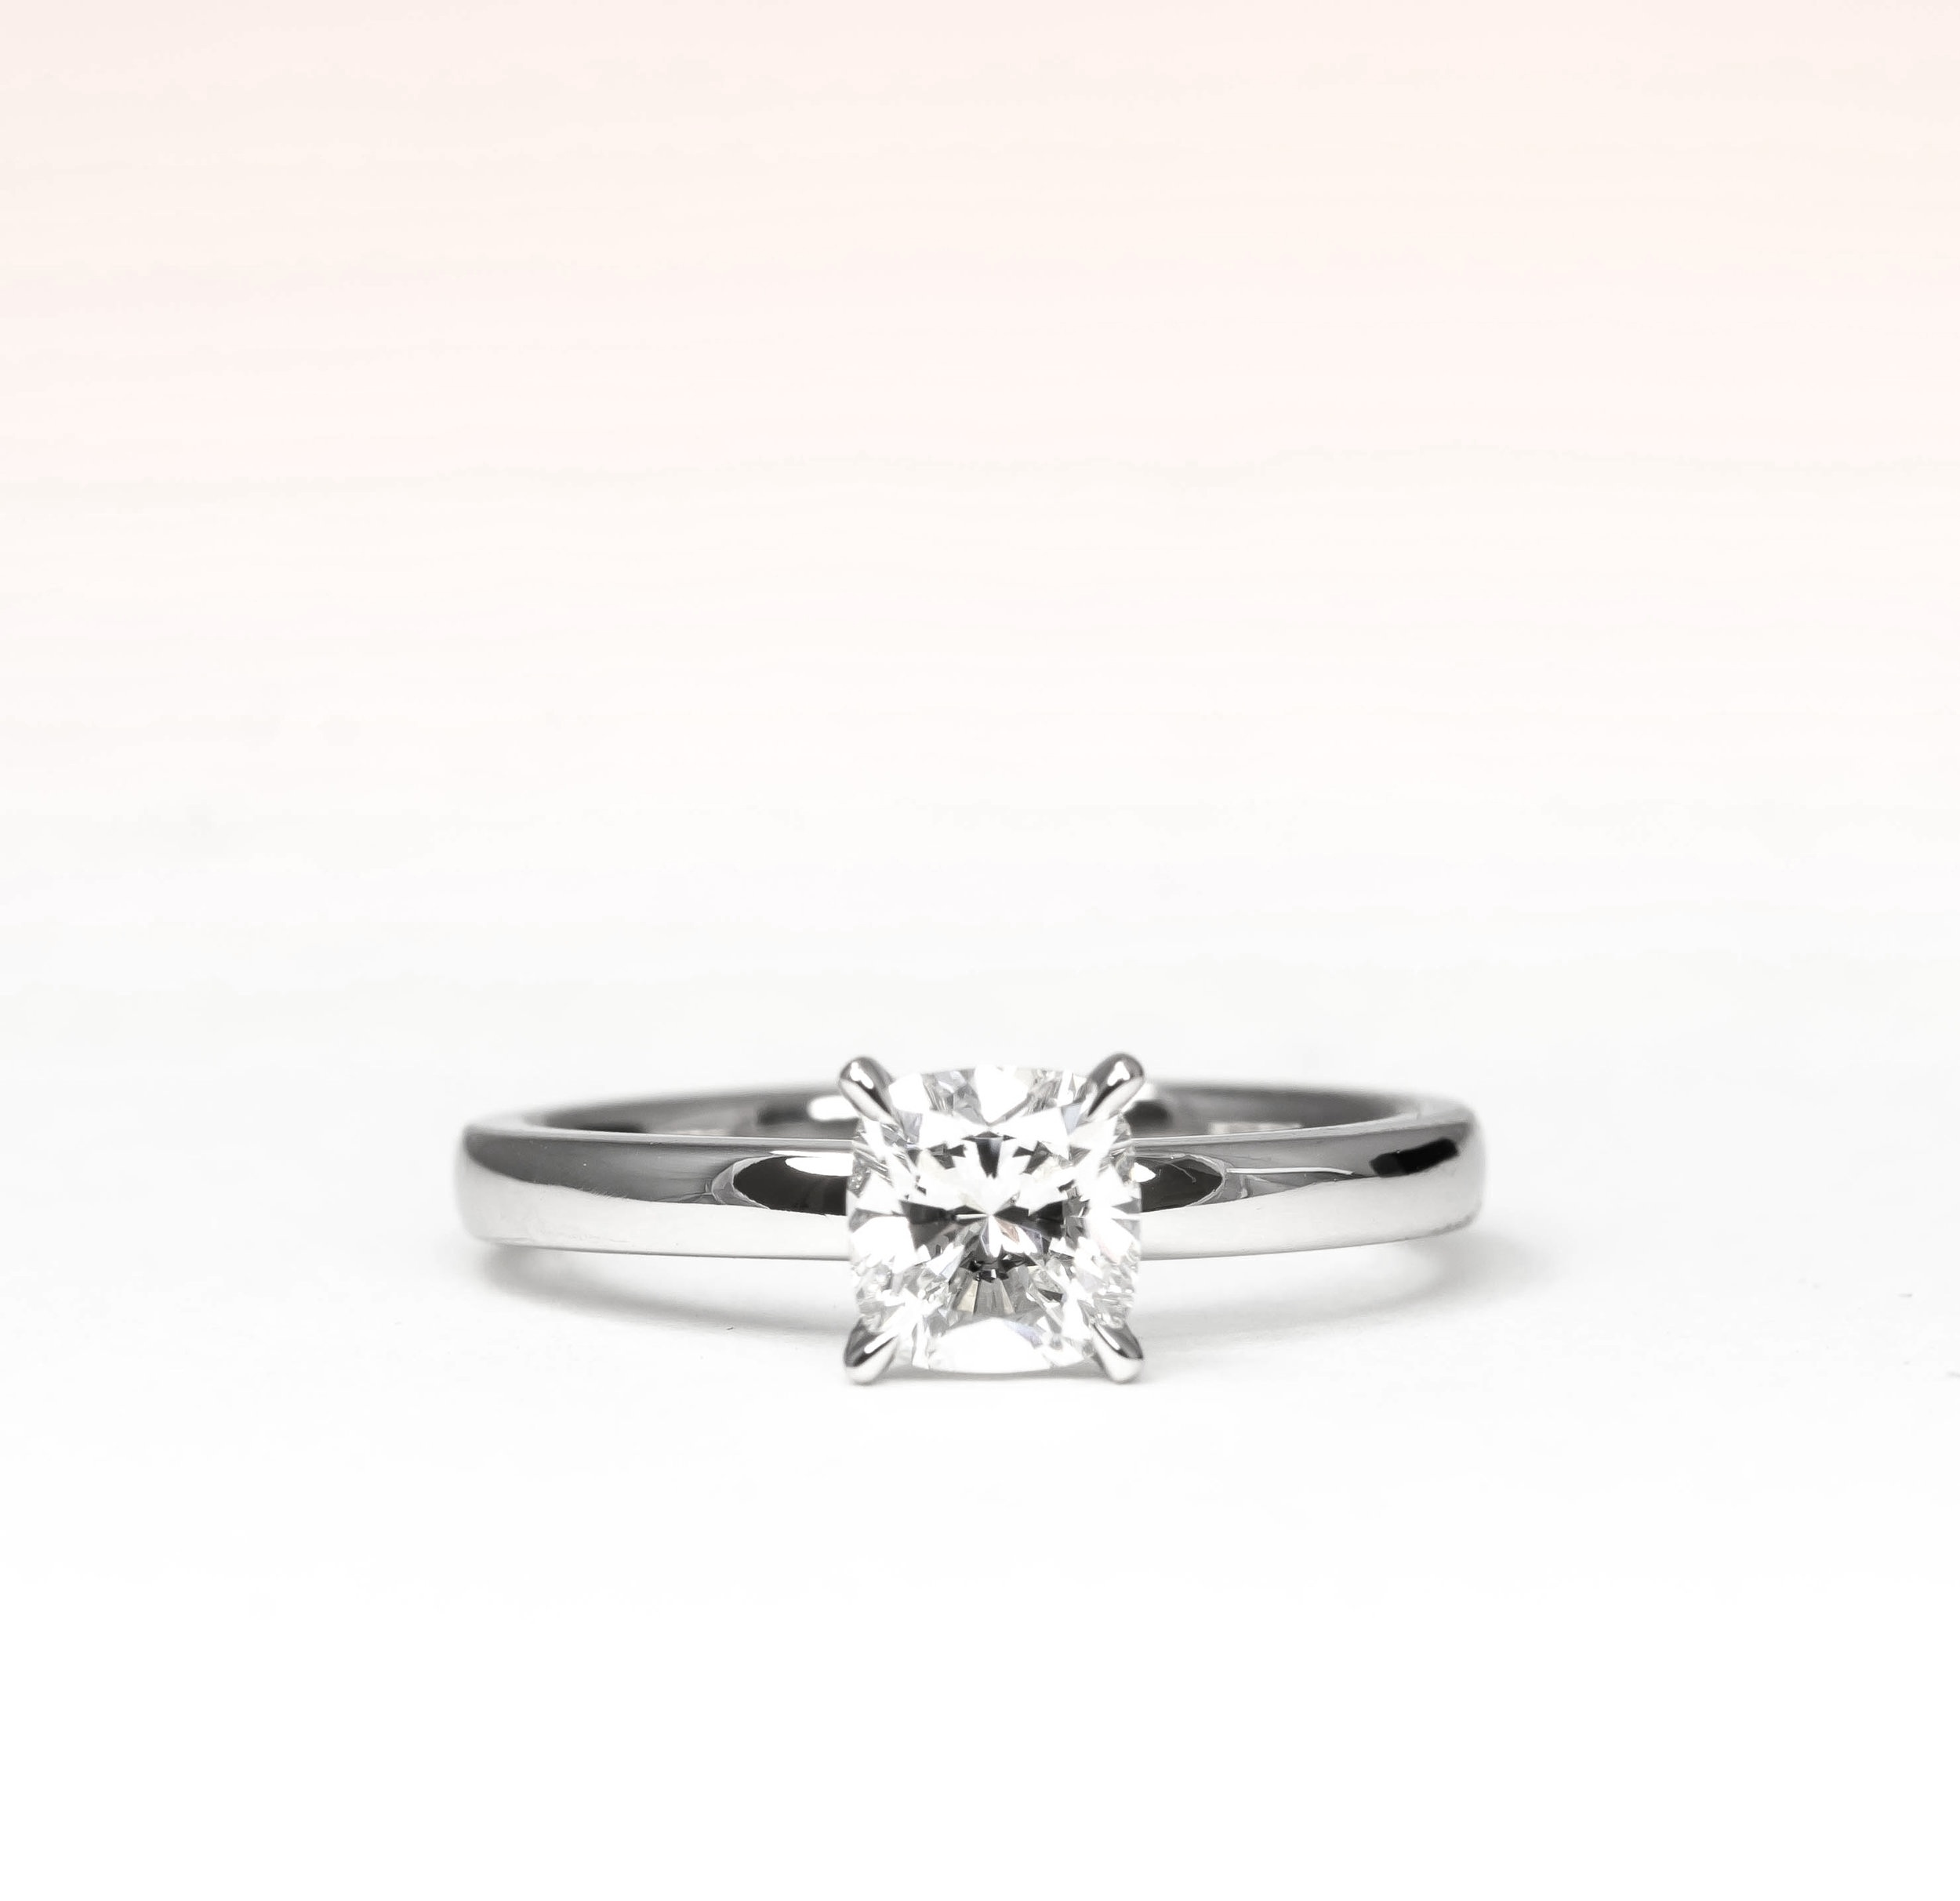 Copy of Cushion brilliant cut diamond solitaire ring. Made in Chichester, England.